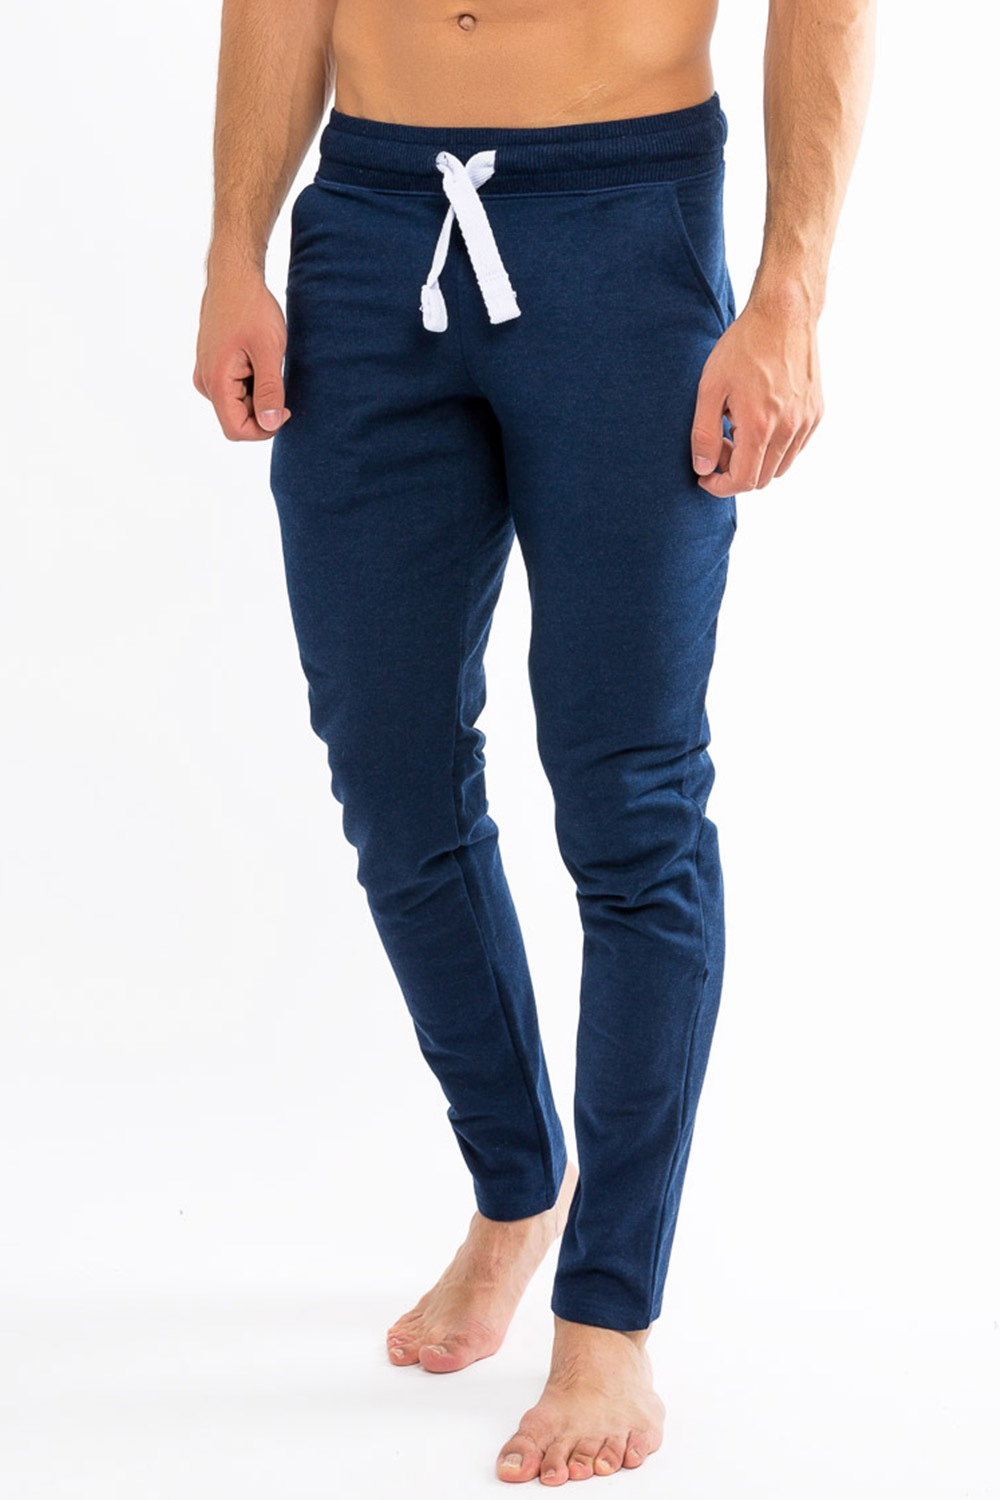 Pantalon trening barbatesti MF Blue